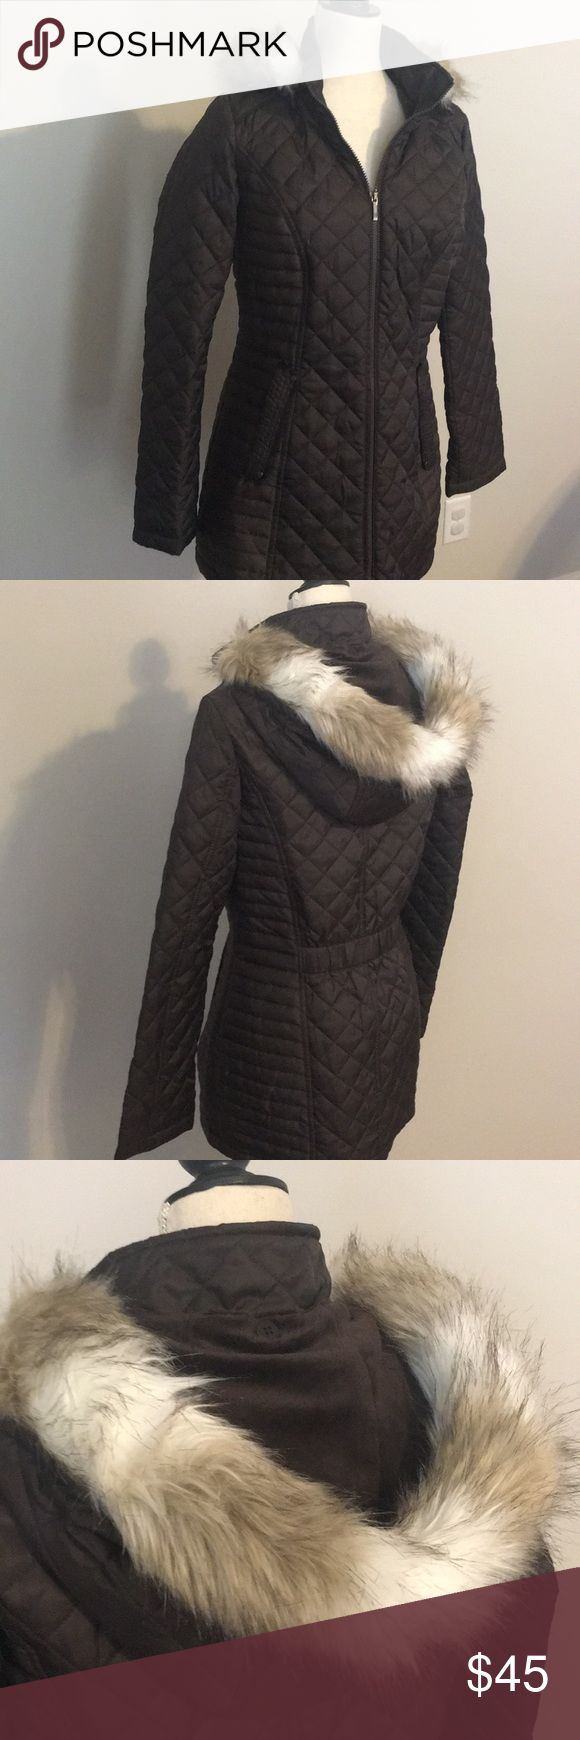 Warm Puffer Jacket Adorable puffer jacket with removable faux fur hood. Two front pockets. Like New Laundry by Design Jackets & Coats Puffers